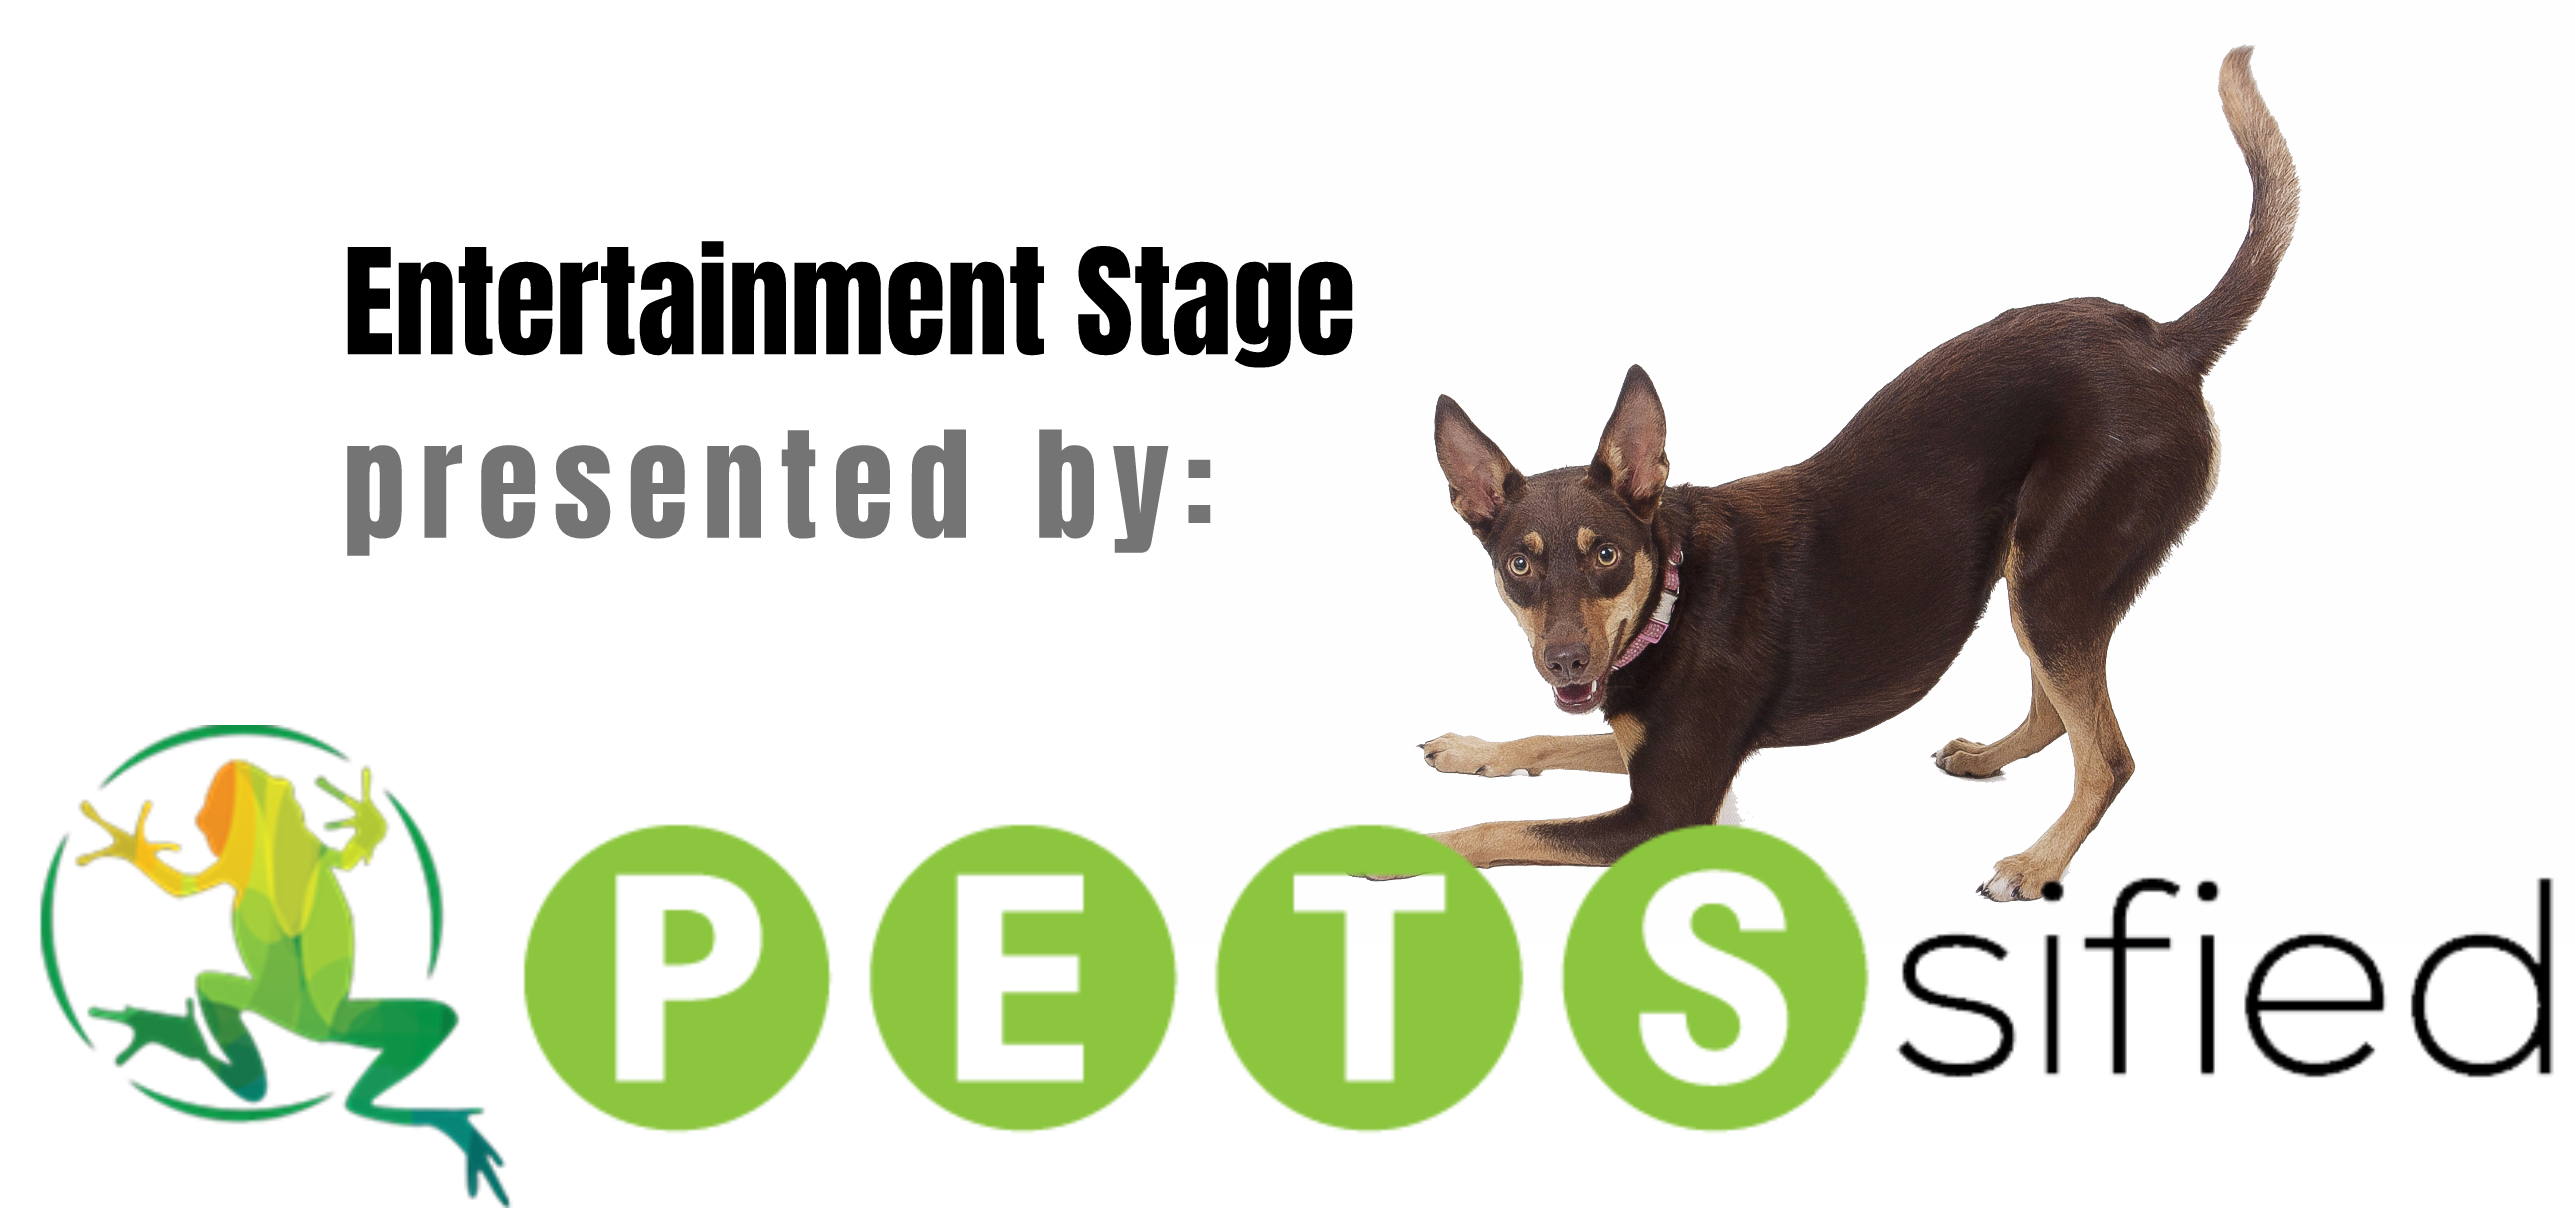 Entertainment Stage masthead